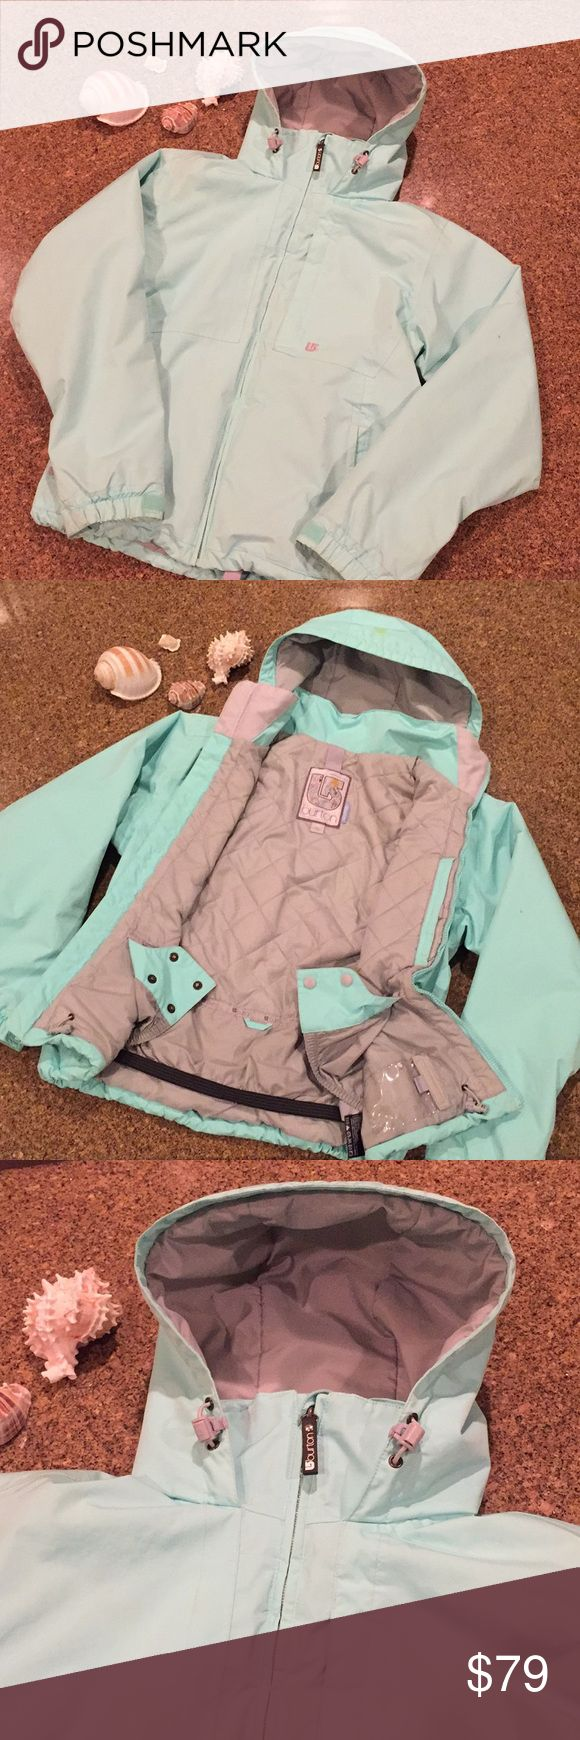 Burton snowboard jacket Burton snowboarding jacket beautiful light turquoise color! Will keep you extra dry and warm on the mountain! Please see pictures for more information! Please bundle and save to save extra even like giving out free items just let me know what you're interested in Burton Jackets & Coats